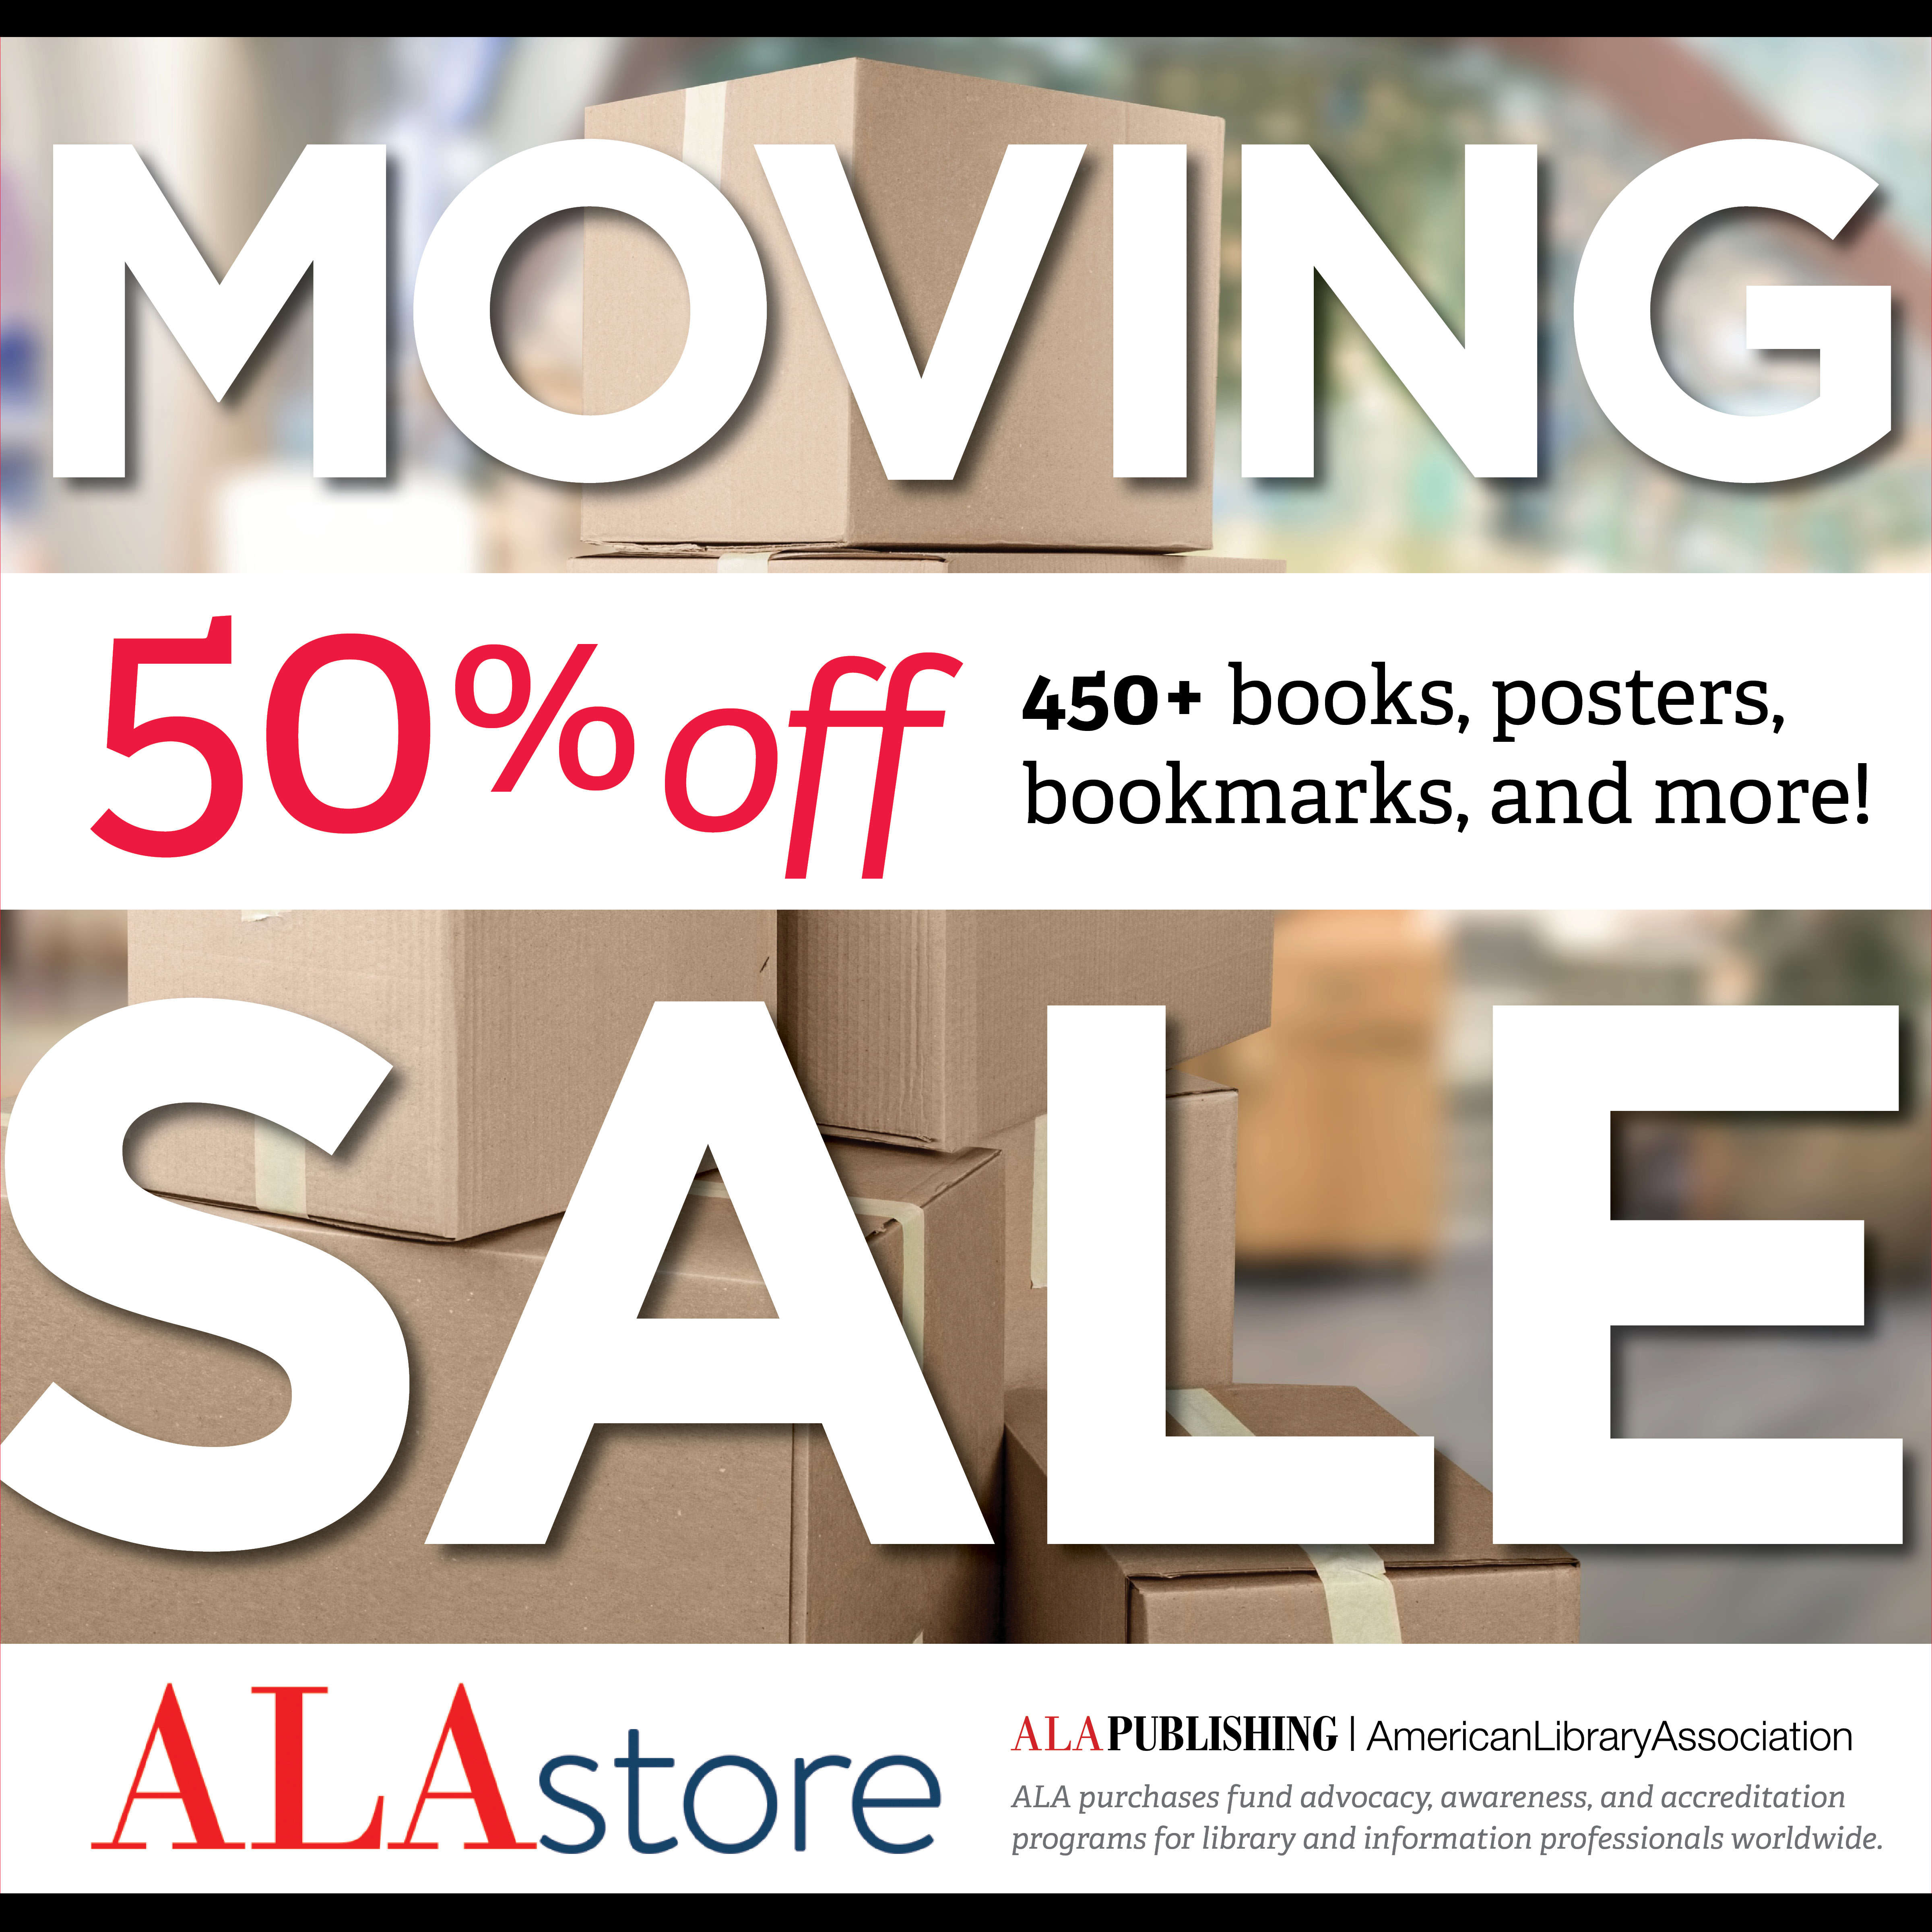 Save 50% on more than 450 products during the ALA Store Moving Sale